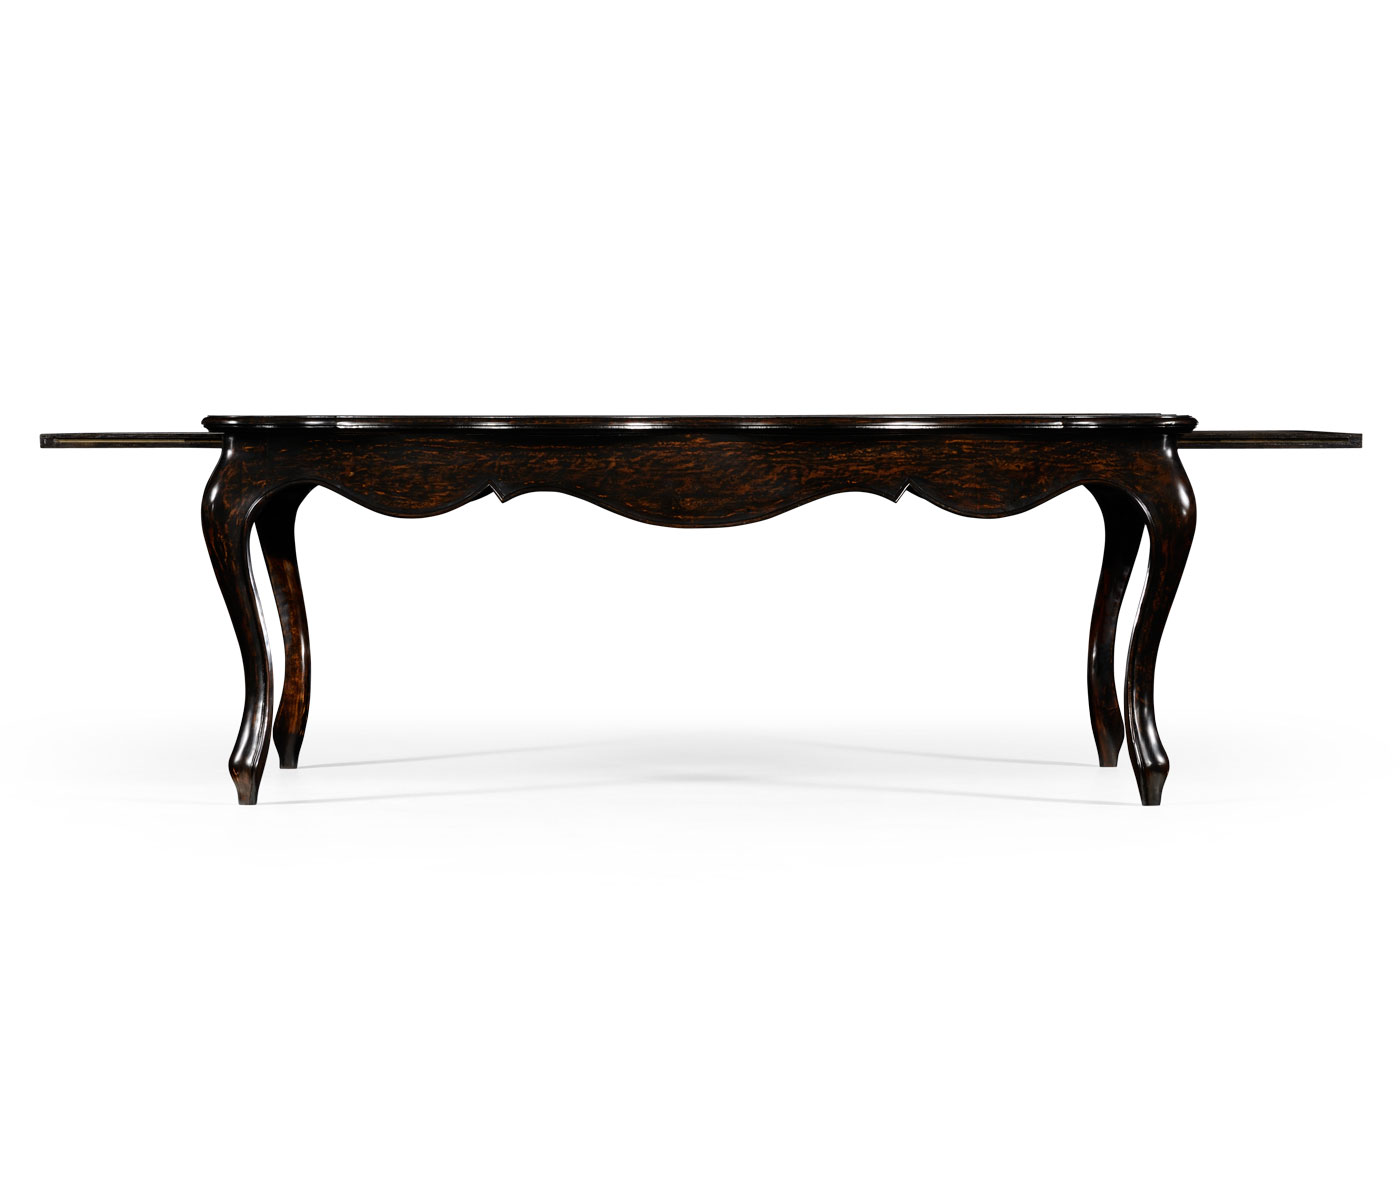 French Coffee Table Dimensions: French Style Black Finish Coffee Table Parquet Top